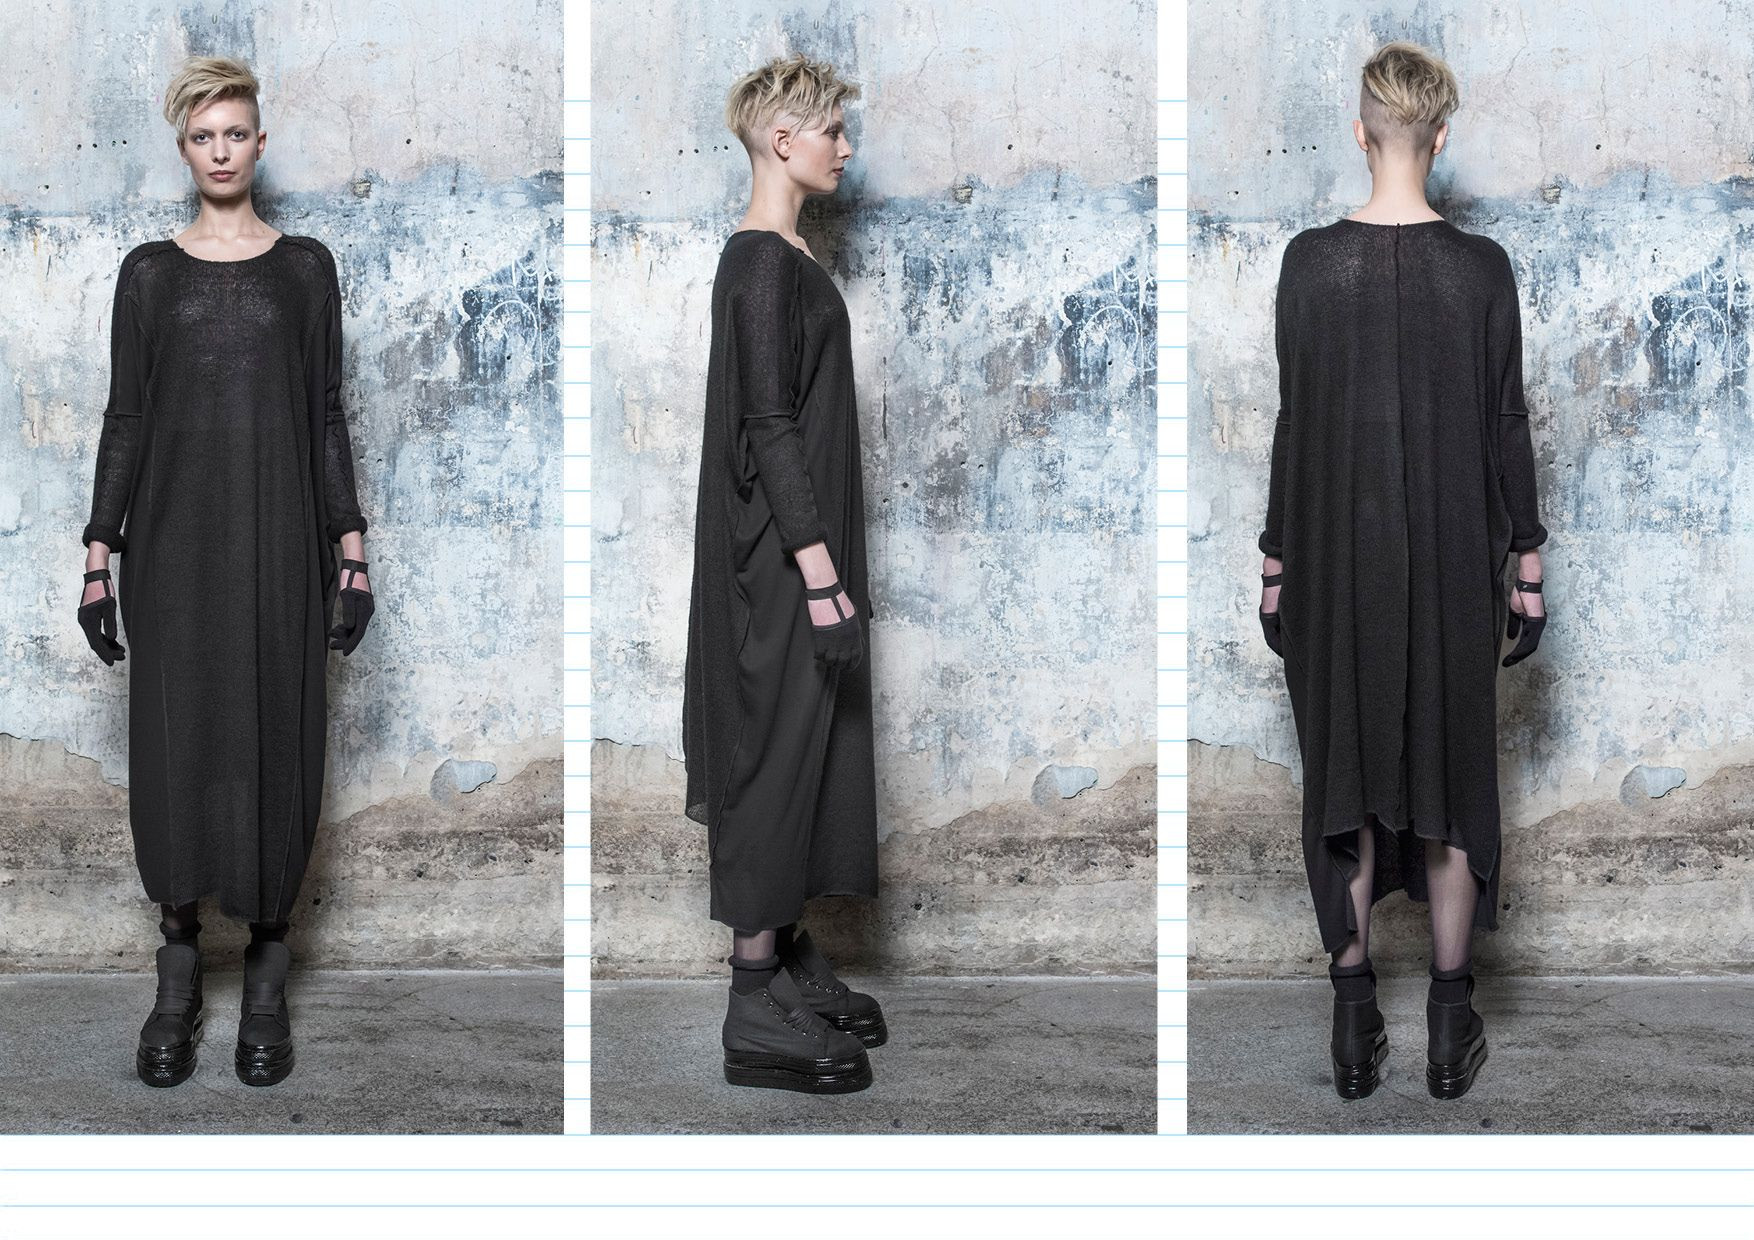 BEATE GODAGER// BLACK-COPY COLLECTION 2013 #beategodager #womanswear #blackcopycollection #scandinavian #lookbook